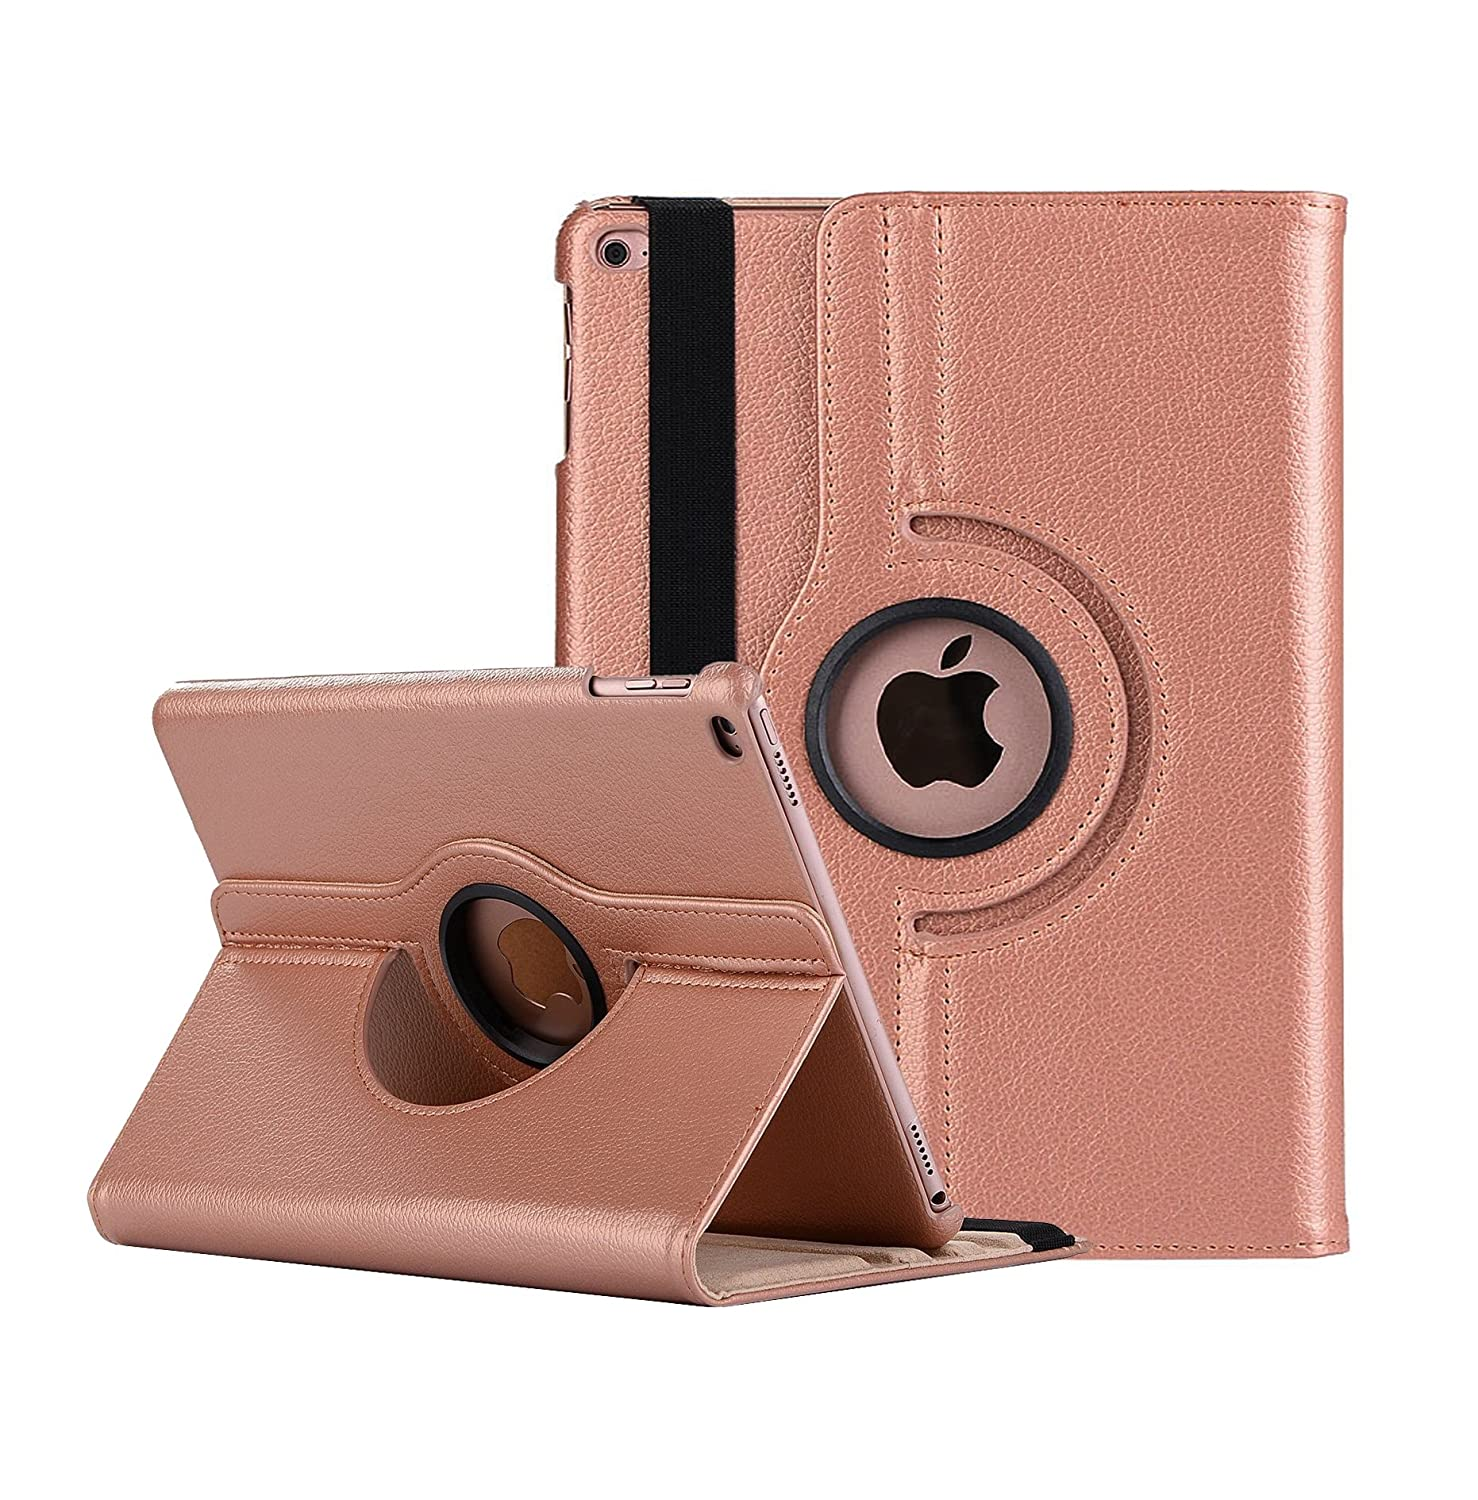 Robustrion Smart 360 Degree Rotating Stand Case Cover for